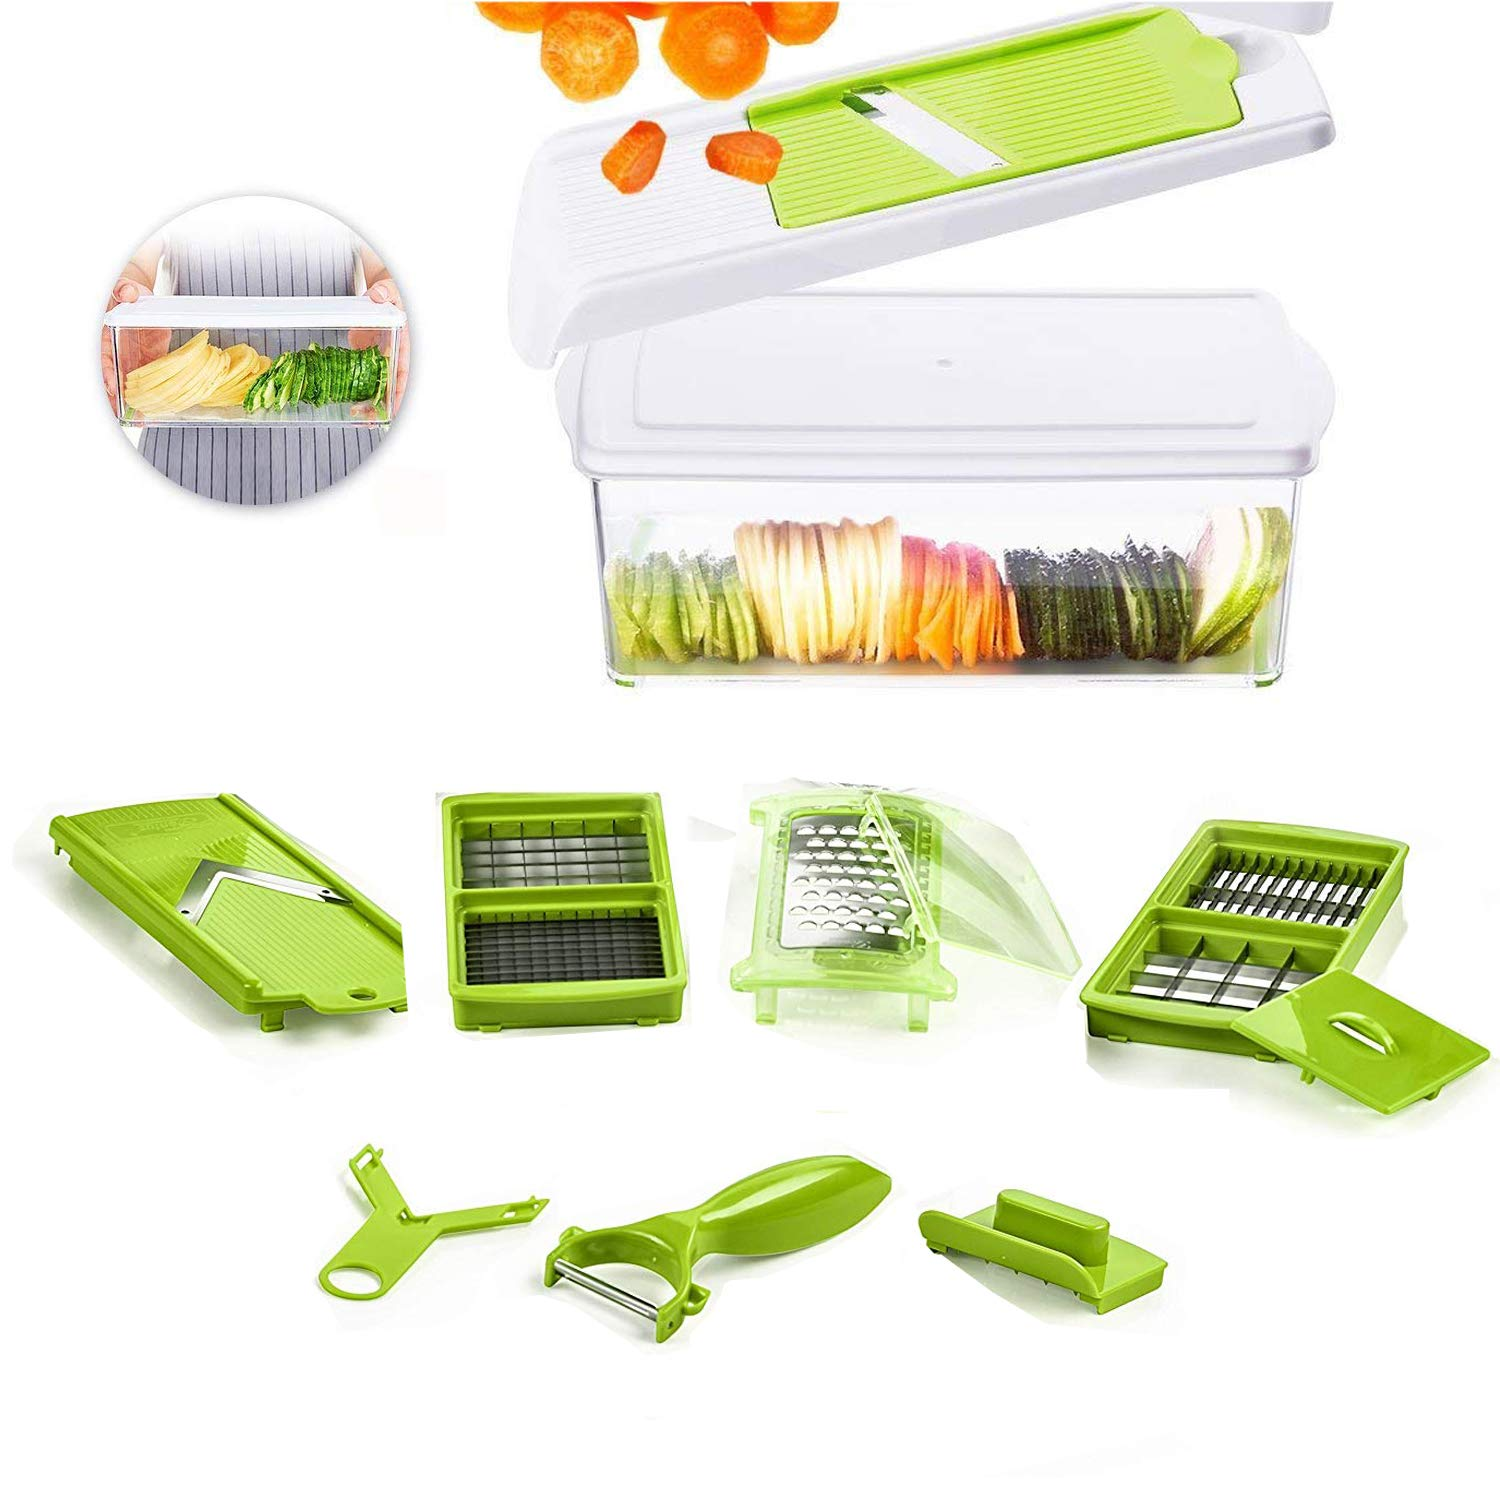 Beemoon Vegetable Chopper - 9 IN 1 Vegetable Slicer with Stainless Blades and 1.5L storage container - Cutter, Peeler, Julienne Slicer for Onion, Potato, Tomato and Fruits